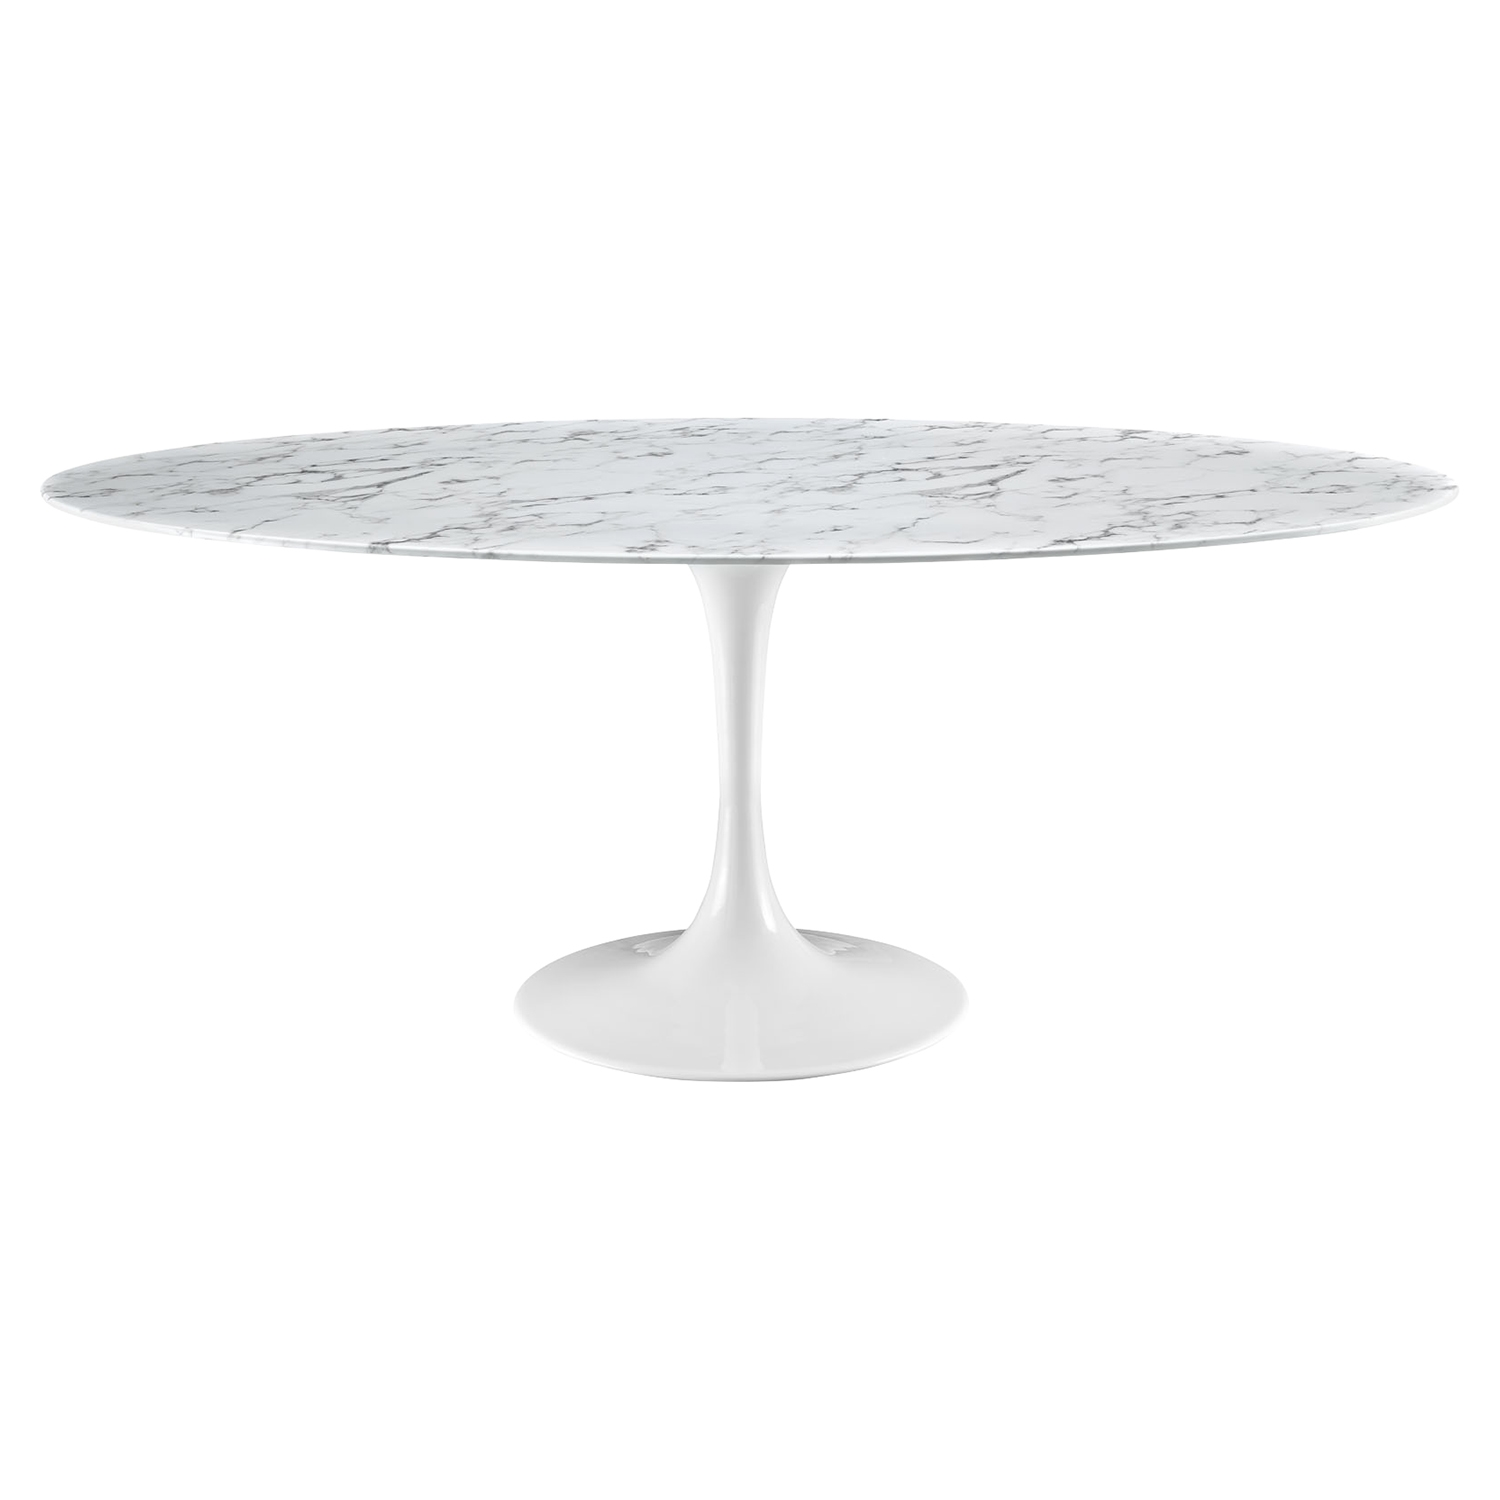 "Lippa 78"" Dining Table - White, Artificial Marble Top - EEI-1659-WHI"